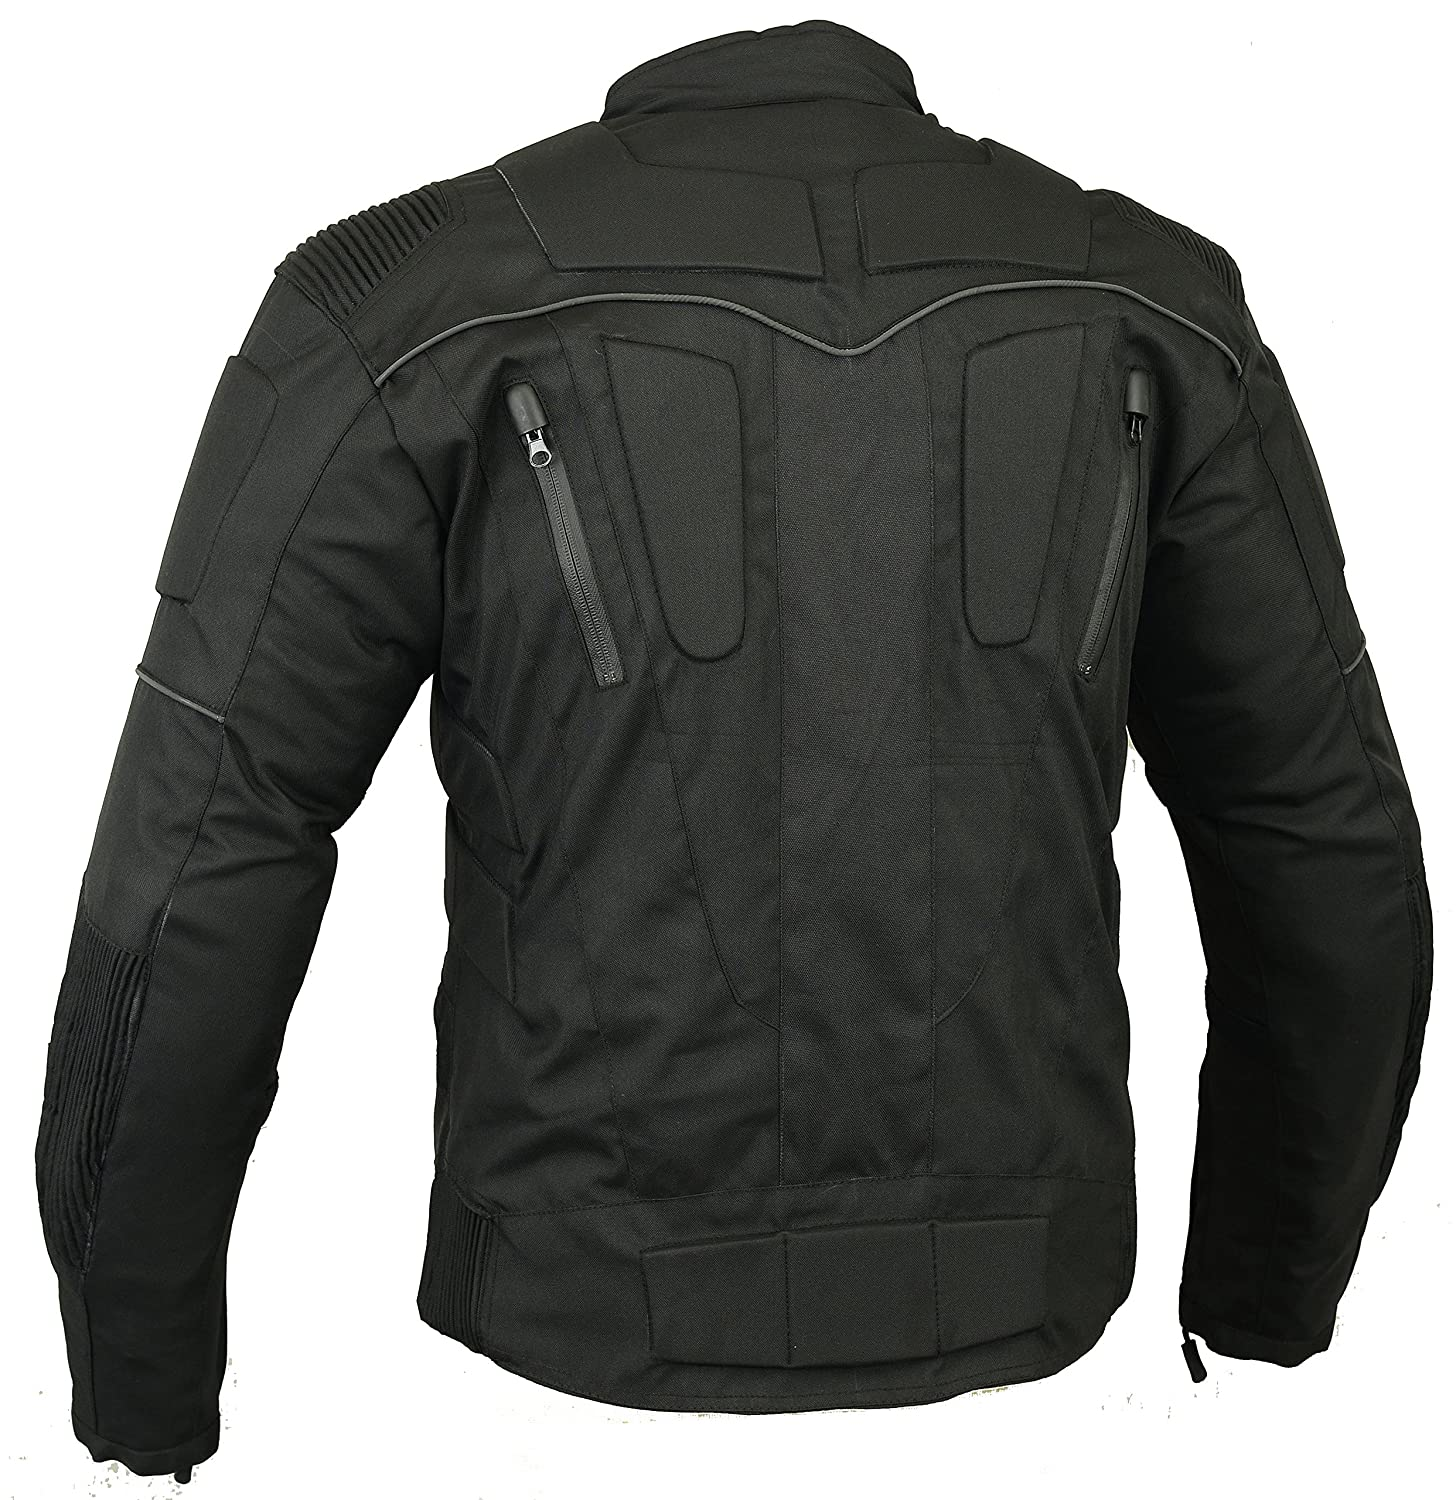 3XL Storm Motorbike Motorcycle Protection Jacket Waterproof with airvents